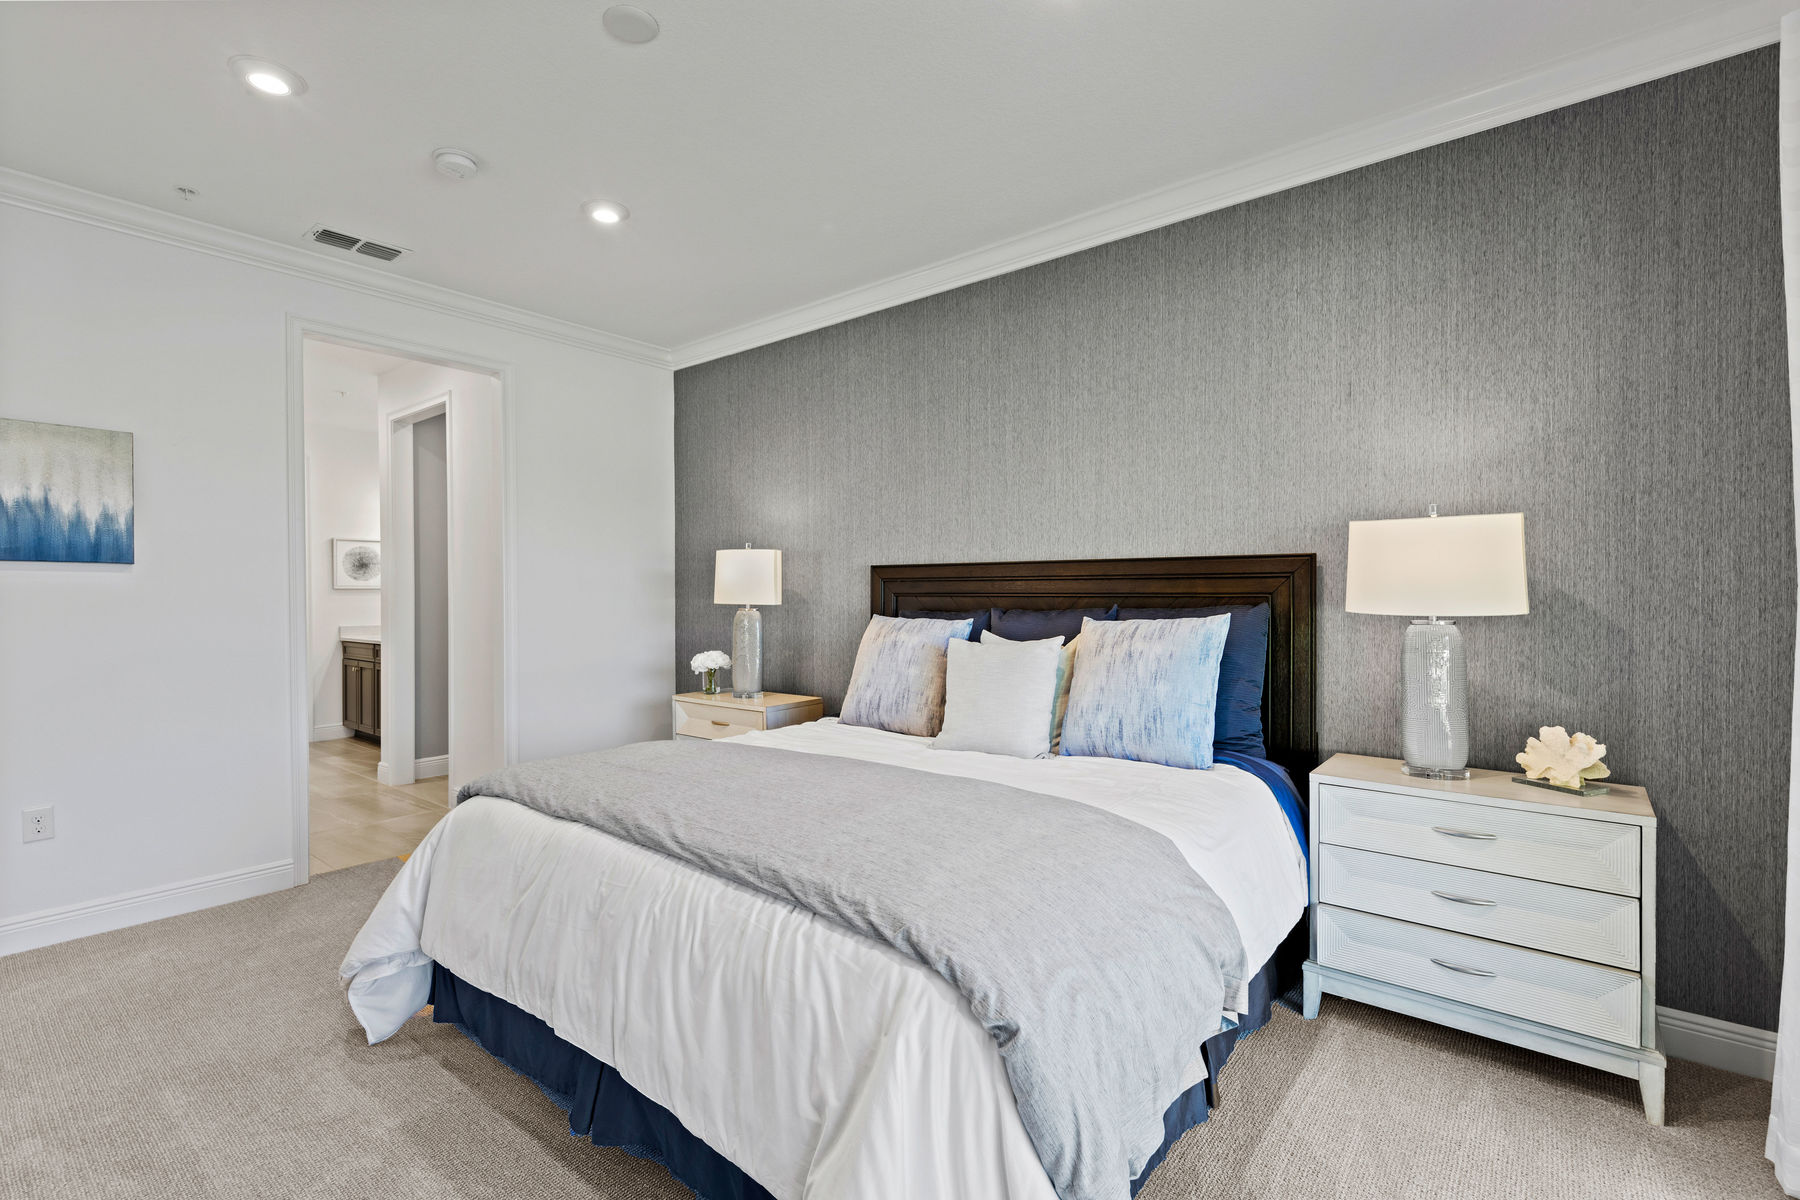 Captiva II Plan Bedroom at Arboretum in Naples Florida by Mattamy Homes